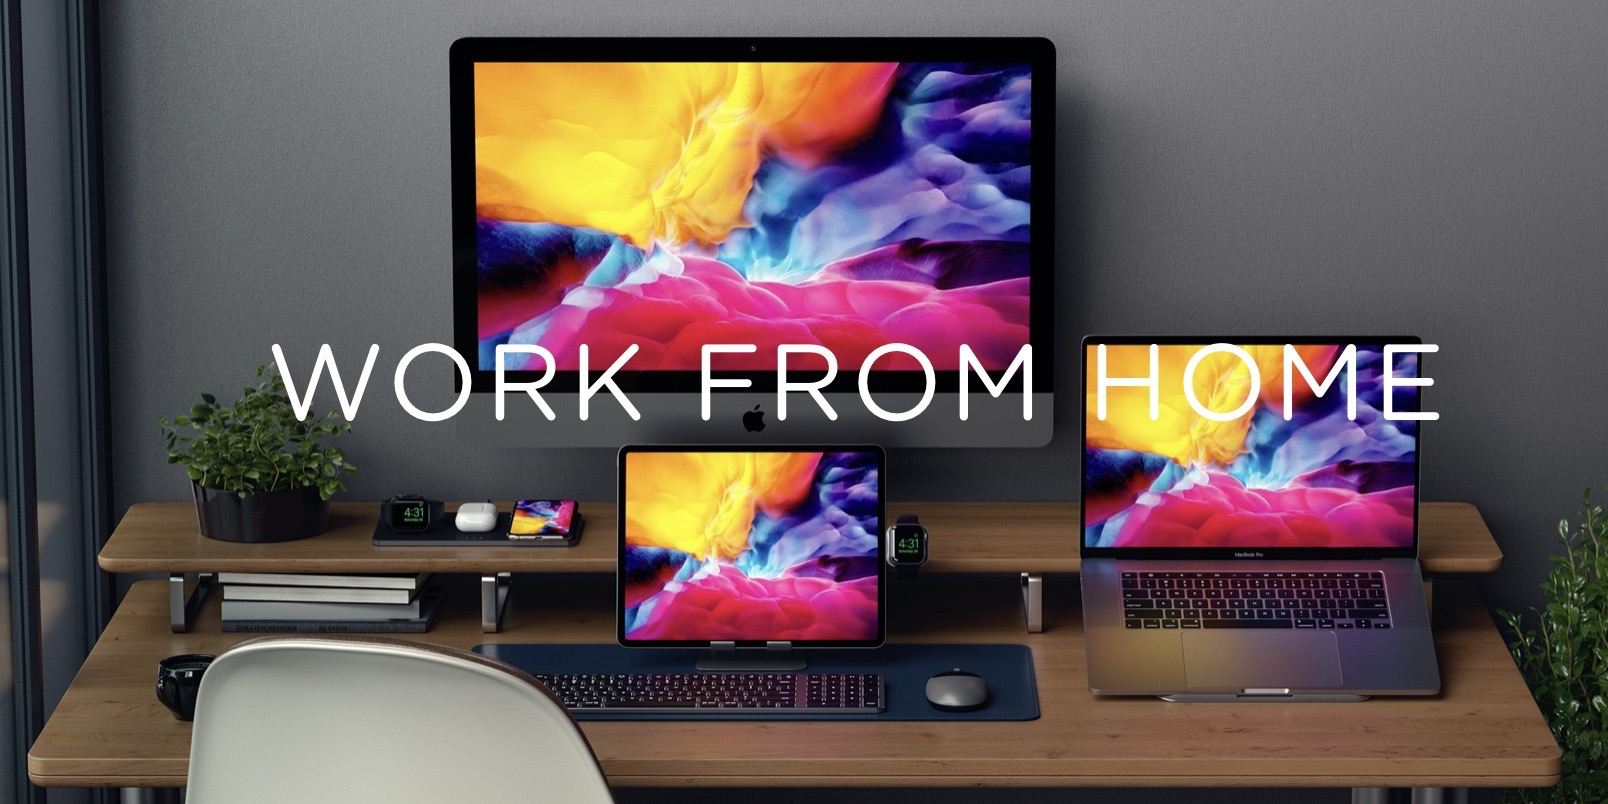 photo of Satechi, Nomad, mophie, Twelve South, and more highlight work from home gear, donate to COVID-19 relief image